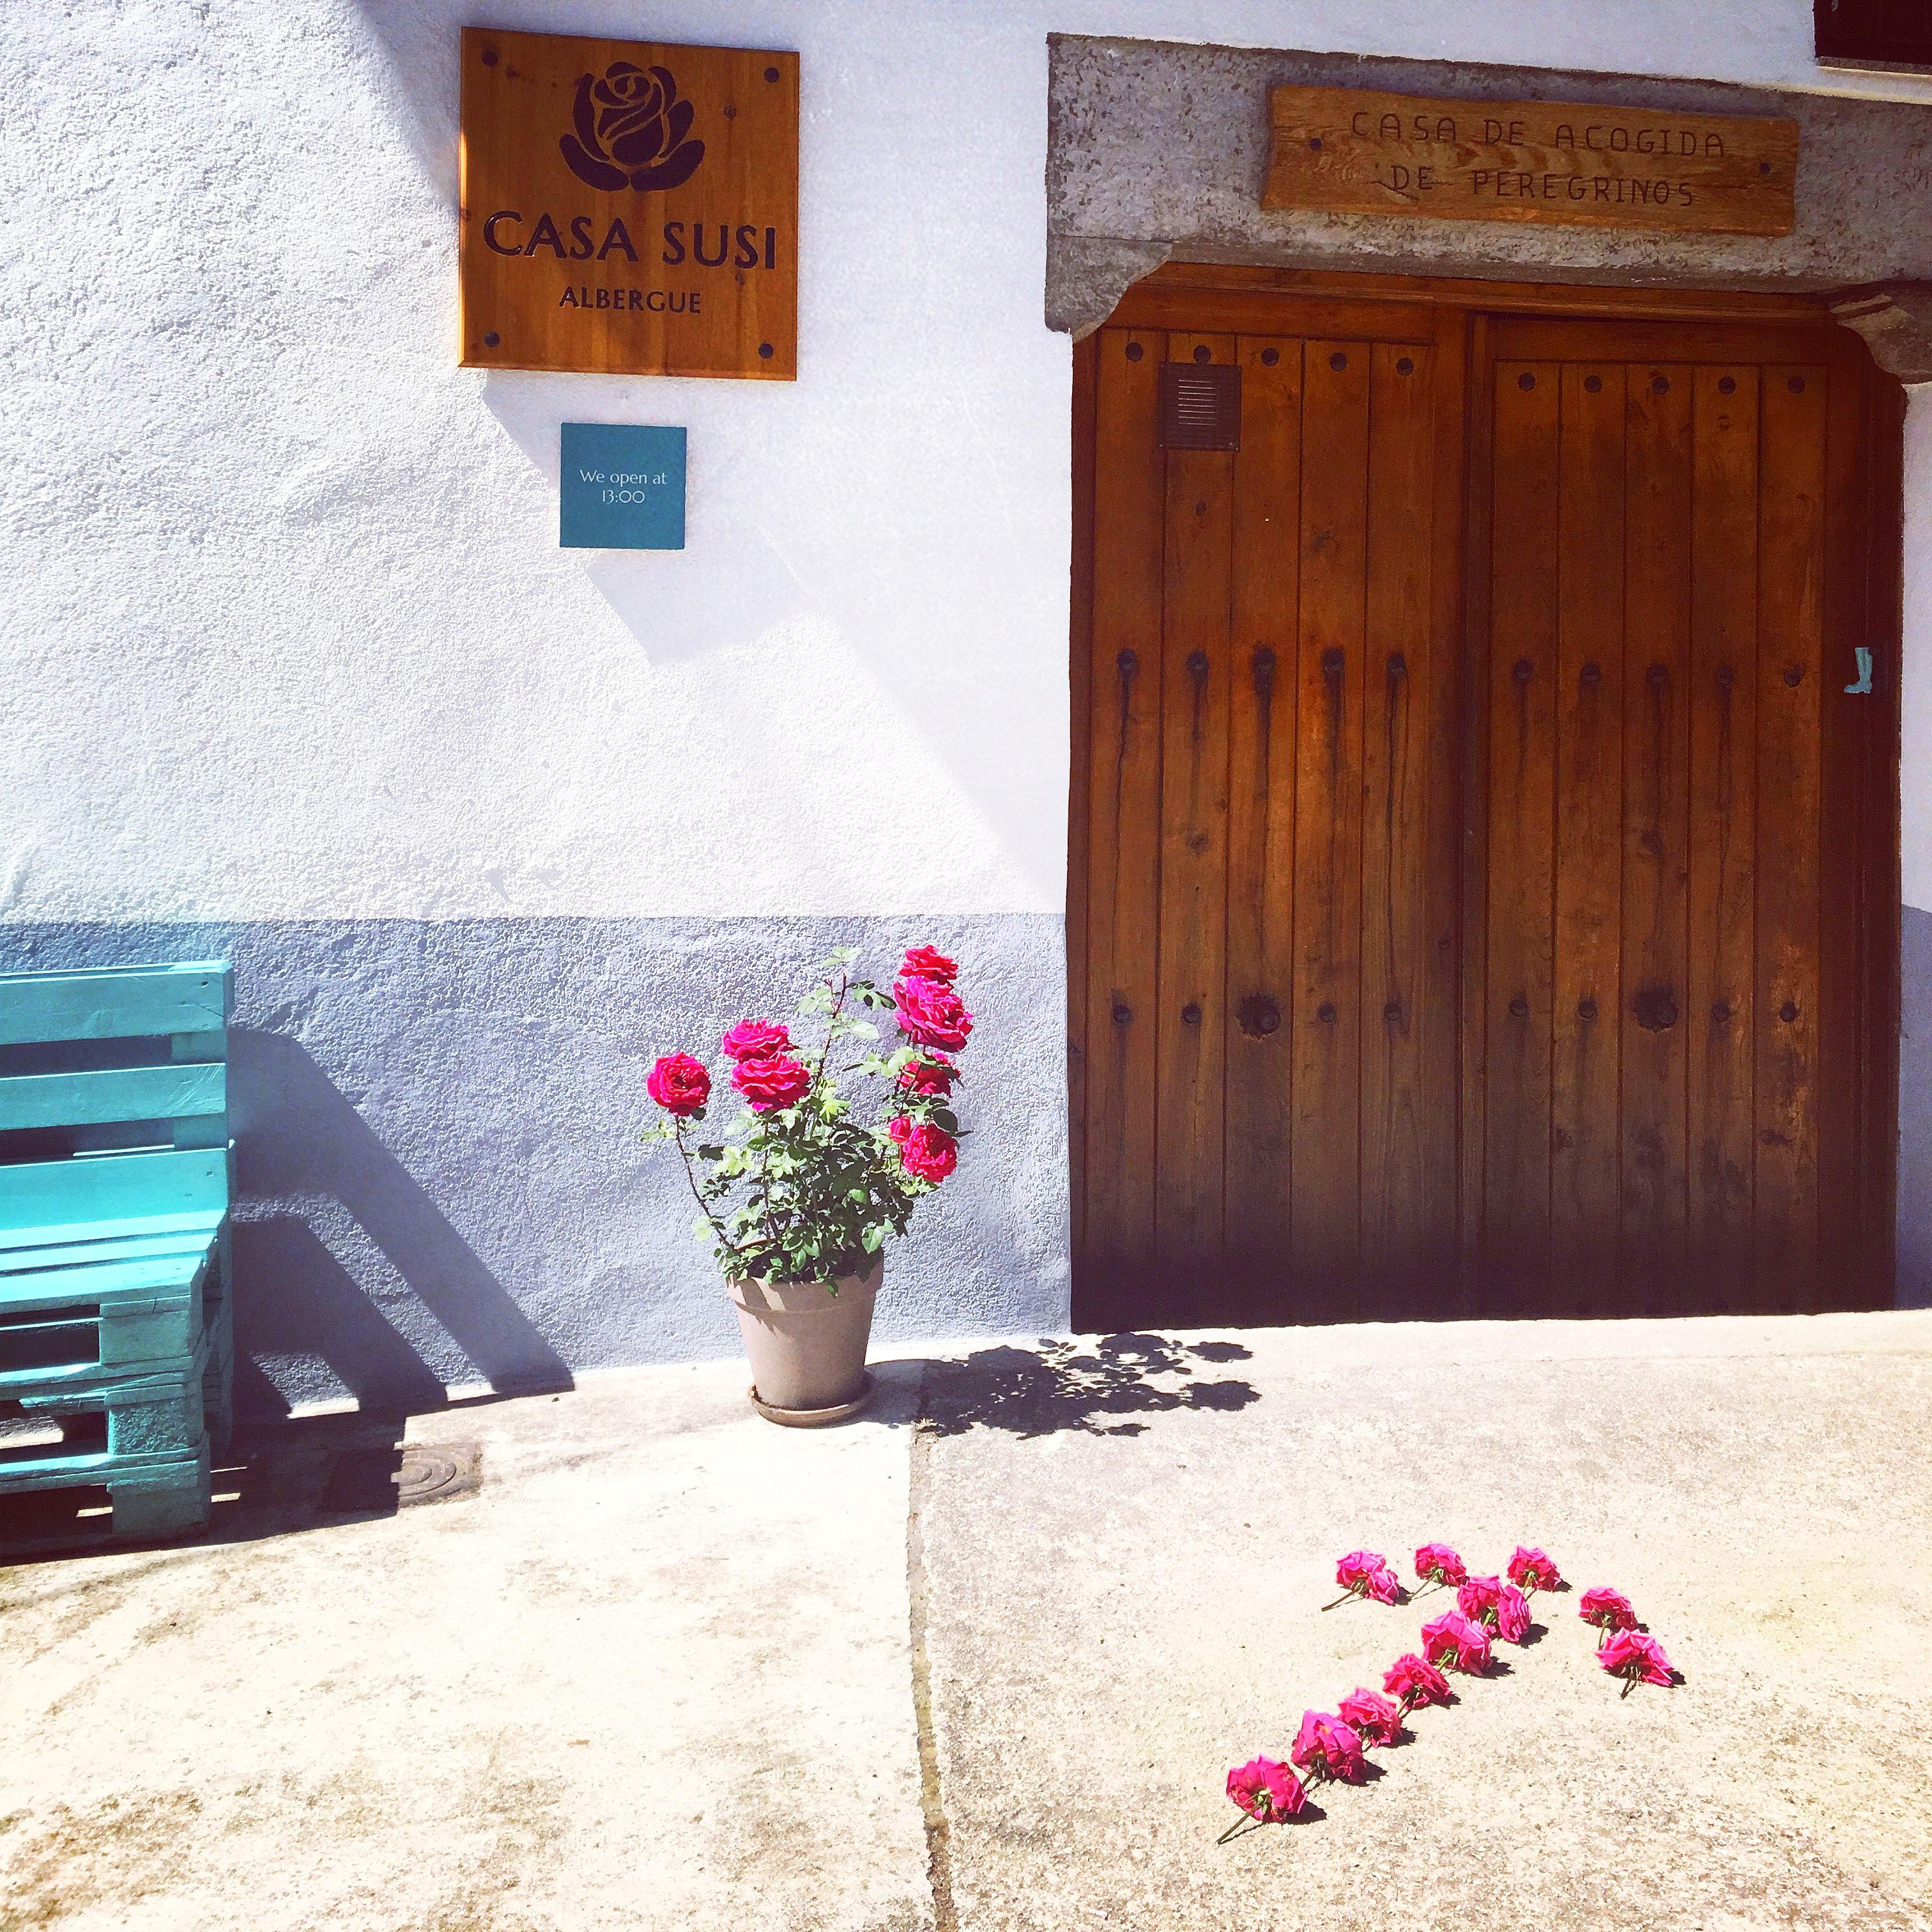 Casa Susi provides an oasis of love and support for pilgrims in Trabadelo